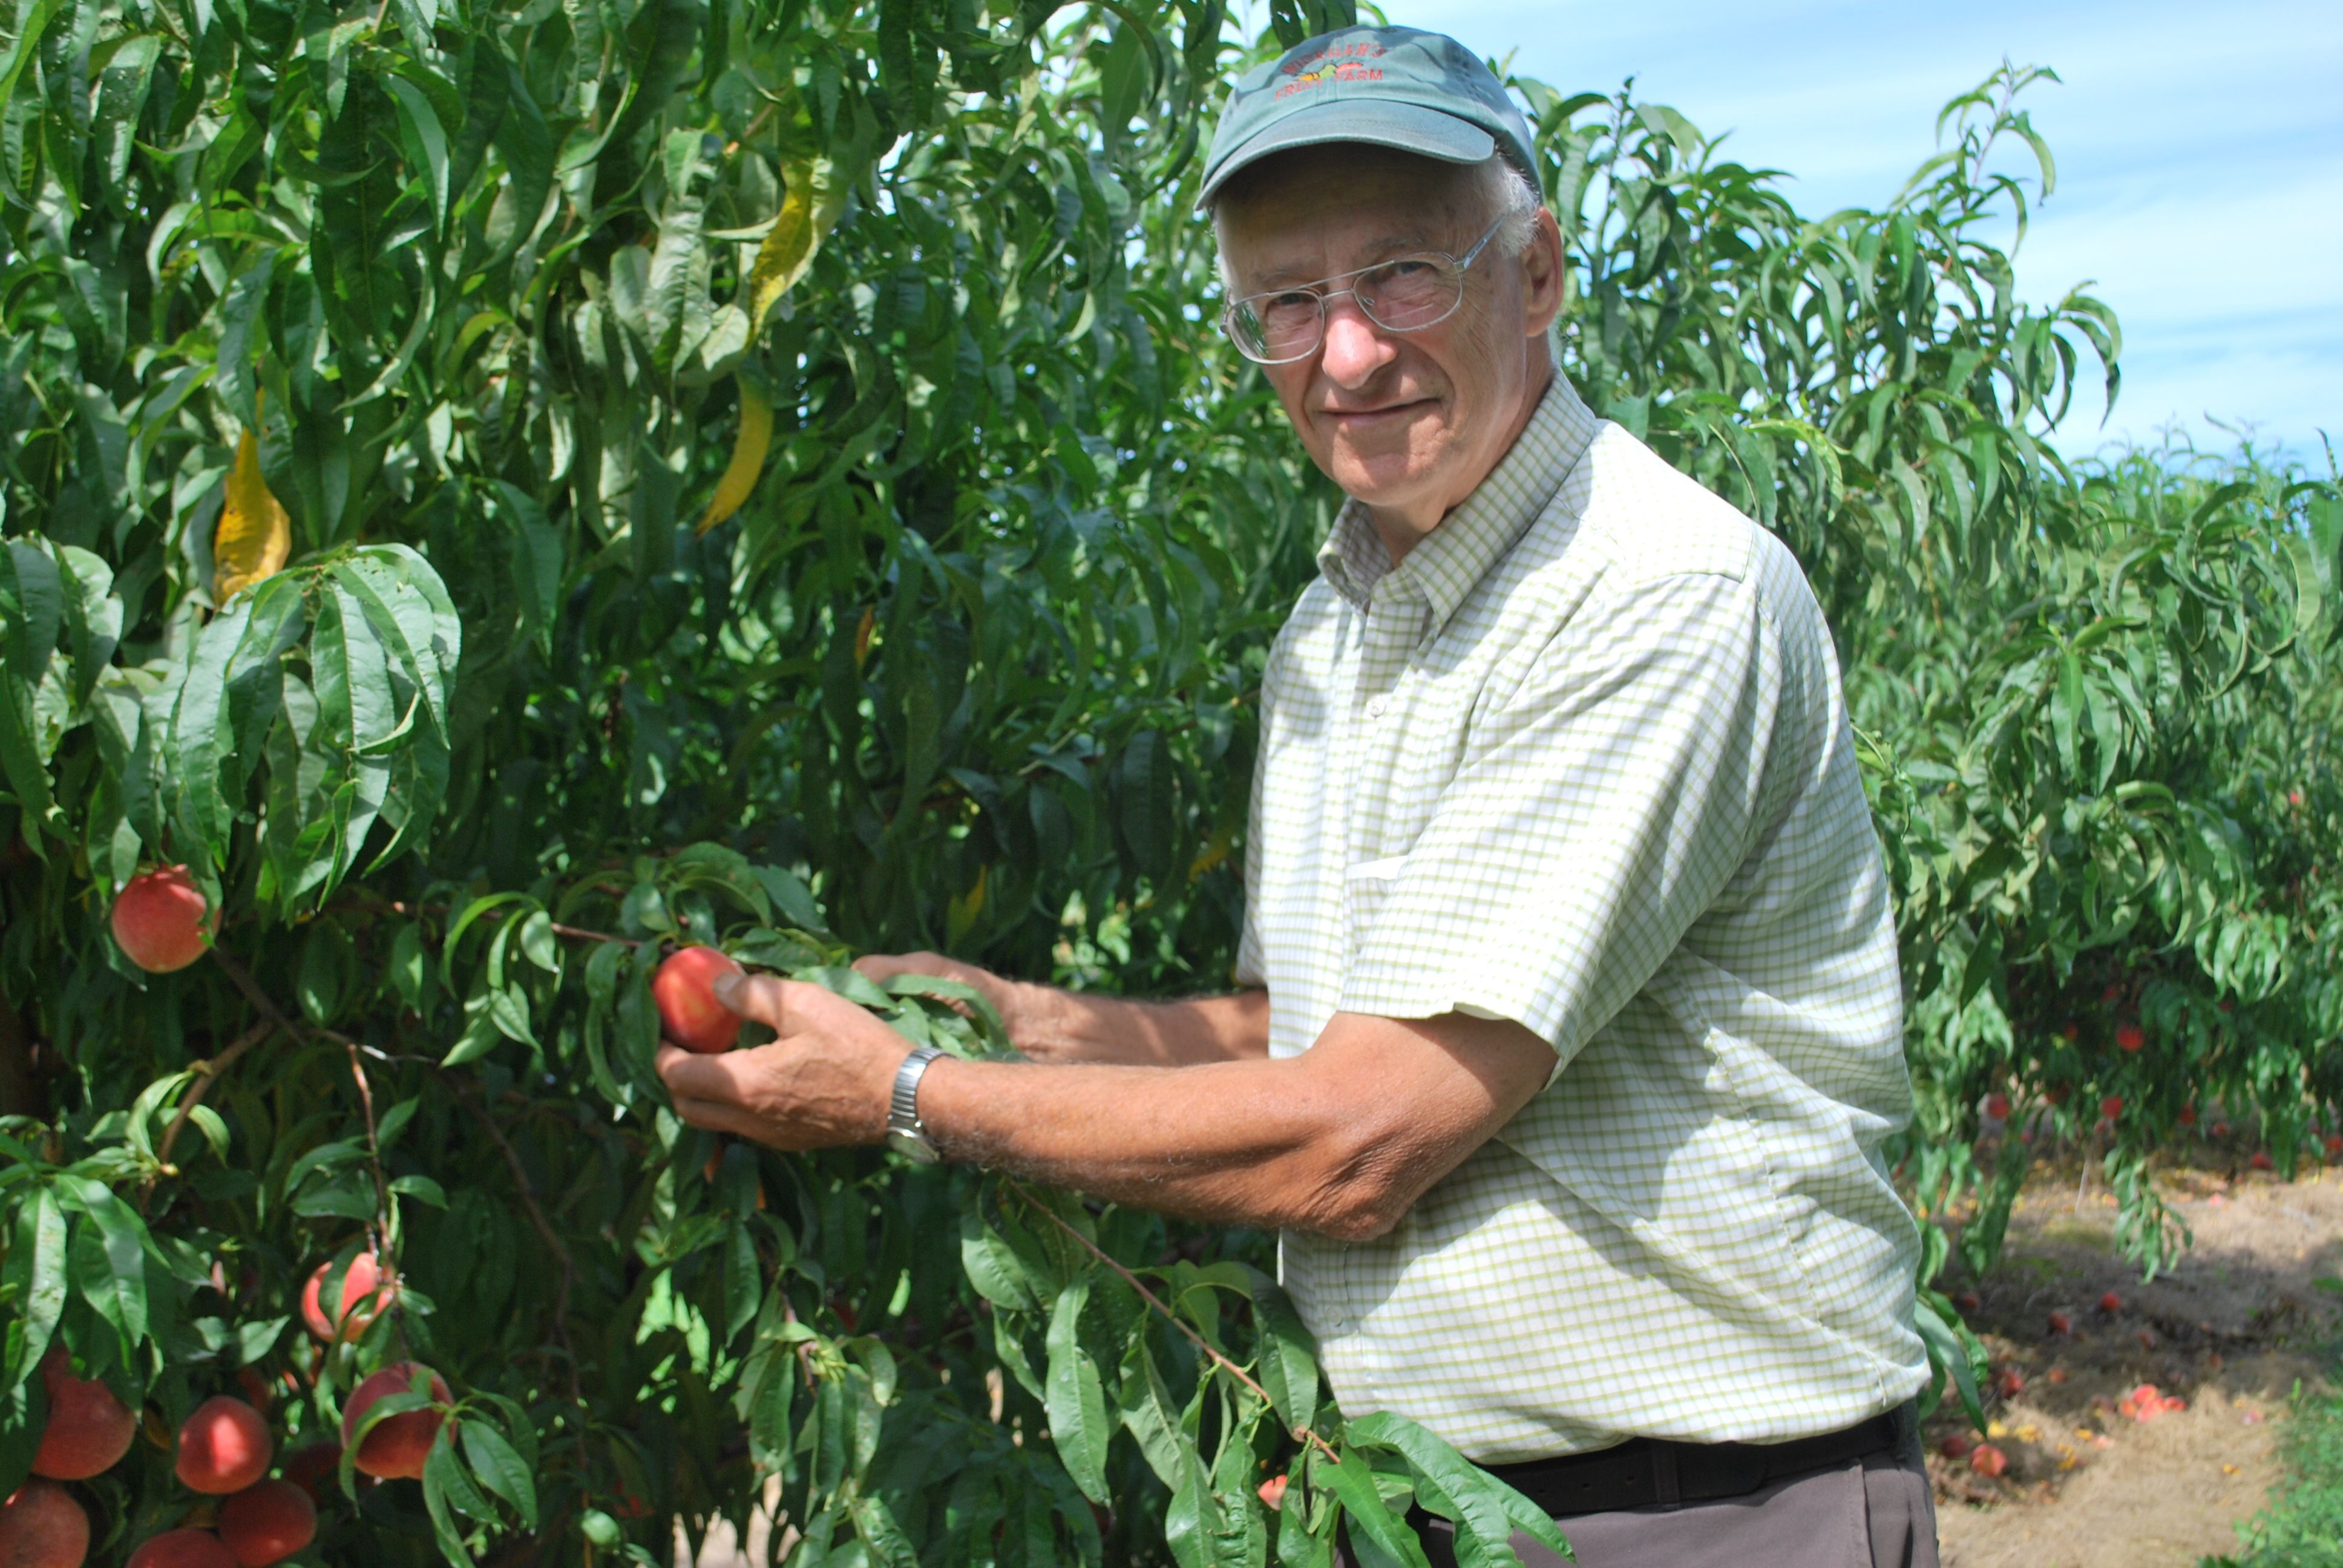 Tom Wickham Owns And Operates Wickham S Fruit Farm Located In Cutchogue A Rural Hamlet On Long Island New York This Family O Long Island Farmer Saving Money